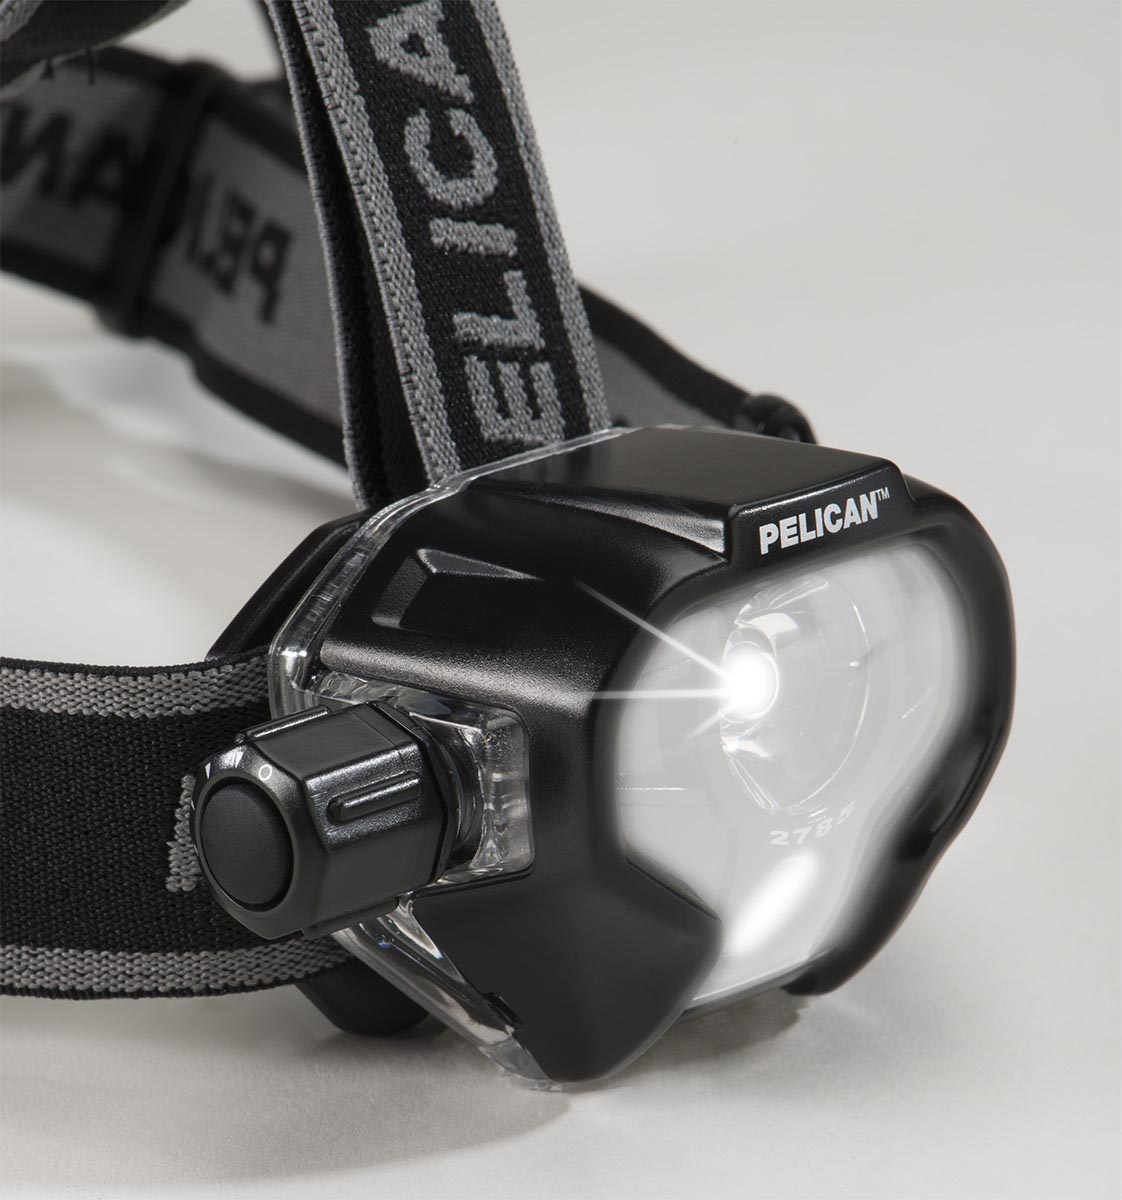 buy pelican safety led headlamp 2785